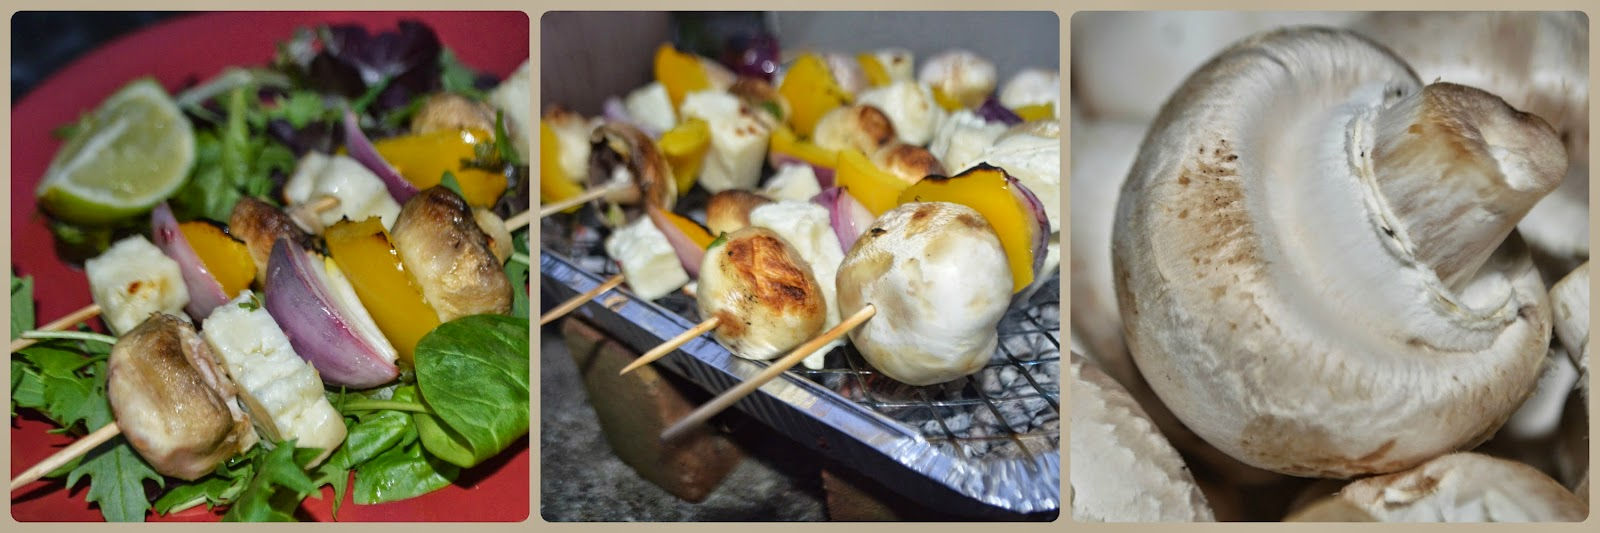 Halloumi Mushroom Kebabs Just Add Mushrooms Family Recipe #Mushroom MealS